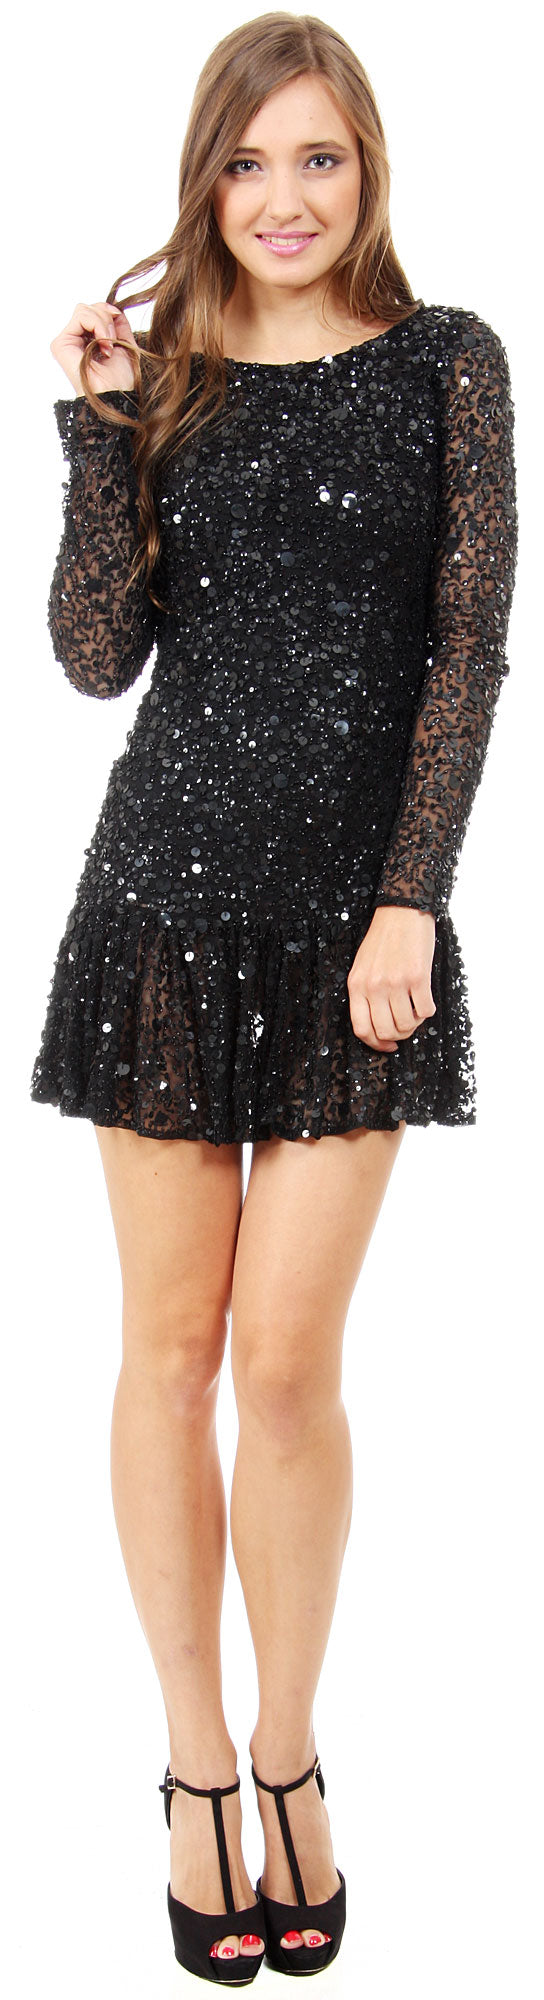 Main image of Full Sleeves Flared Skirt Sequined Mini Party Dress